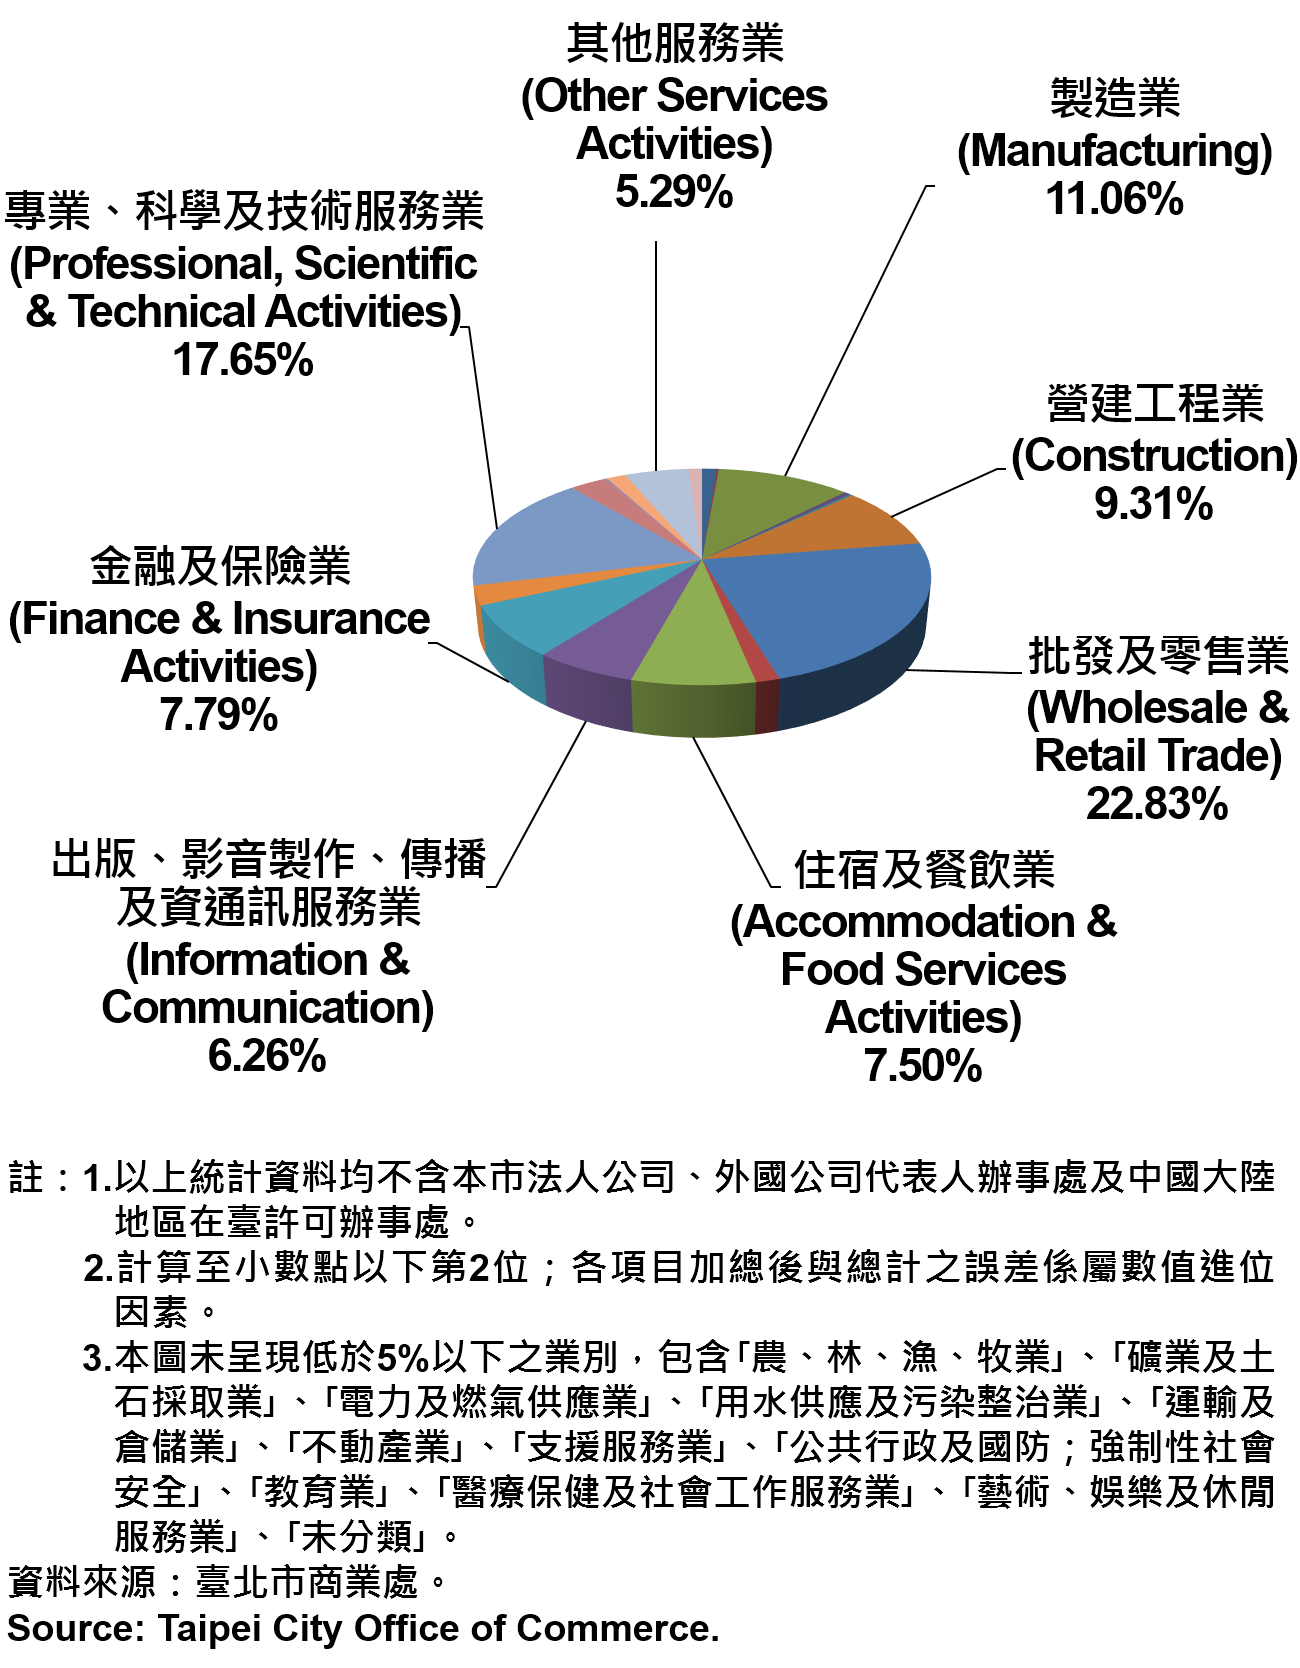 臺北市新創公司行號之業別分布情形—依現存家數—2019Q2 Newly Registered Companies in Taipei City by Industry- Number of Current—2019Q2